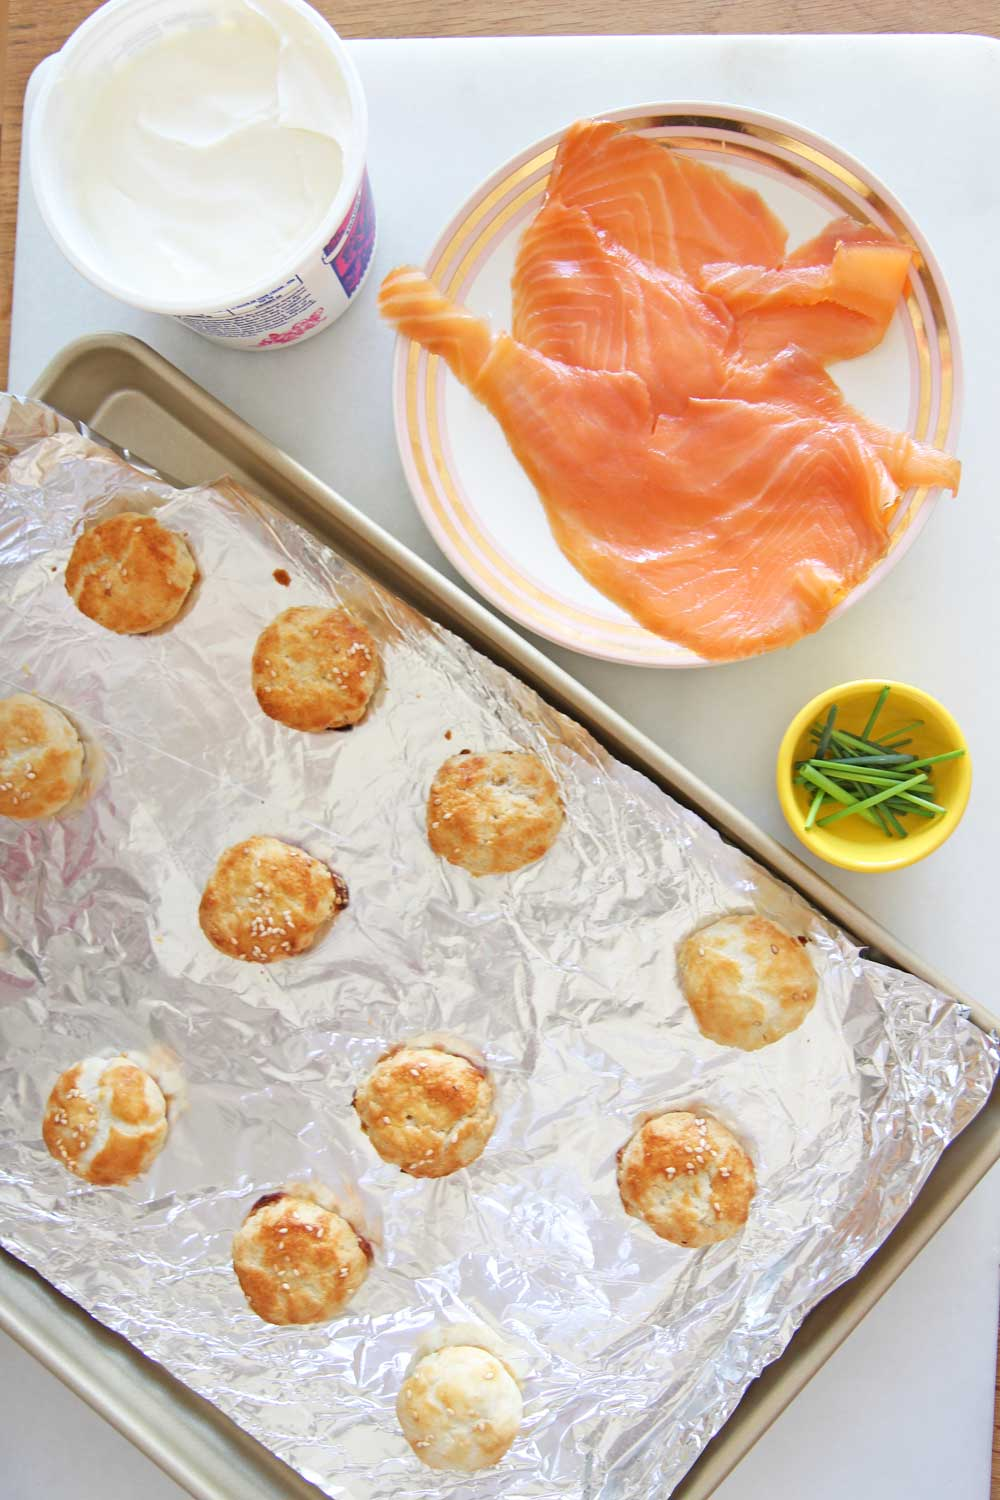 Lox and Potato Knish Recipe. This is potato knish, lox, sour cream, and chives. This is the perfect New Years appetizer, Holiday appetizer, or game night eats. This is super easy. Happy Cooking! www.ChopHappy.com